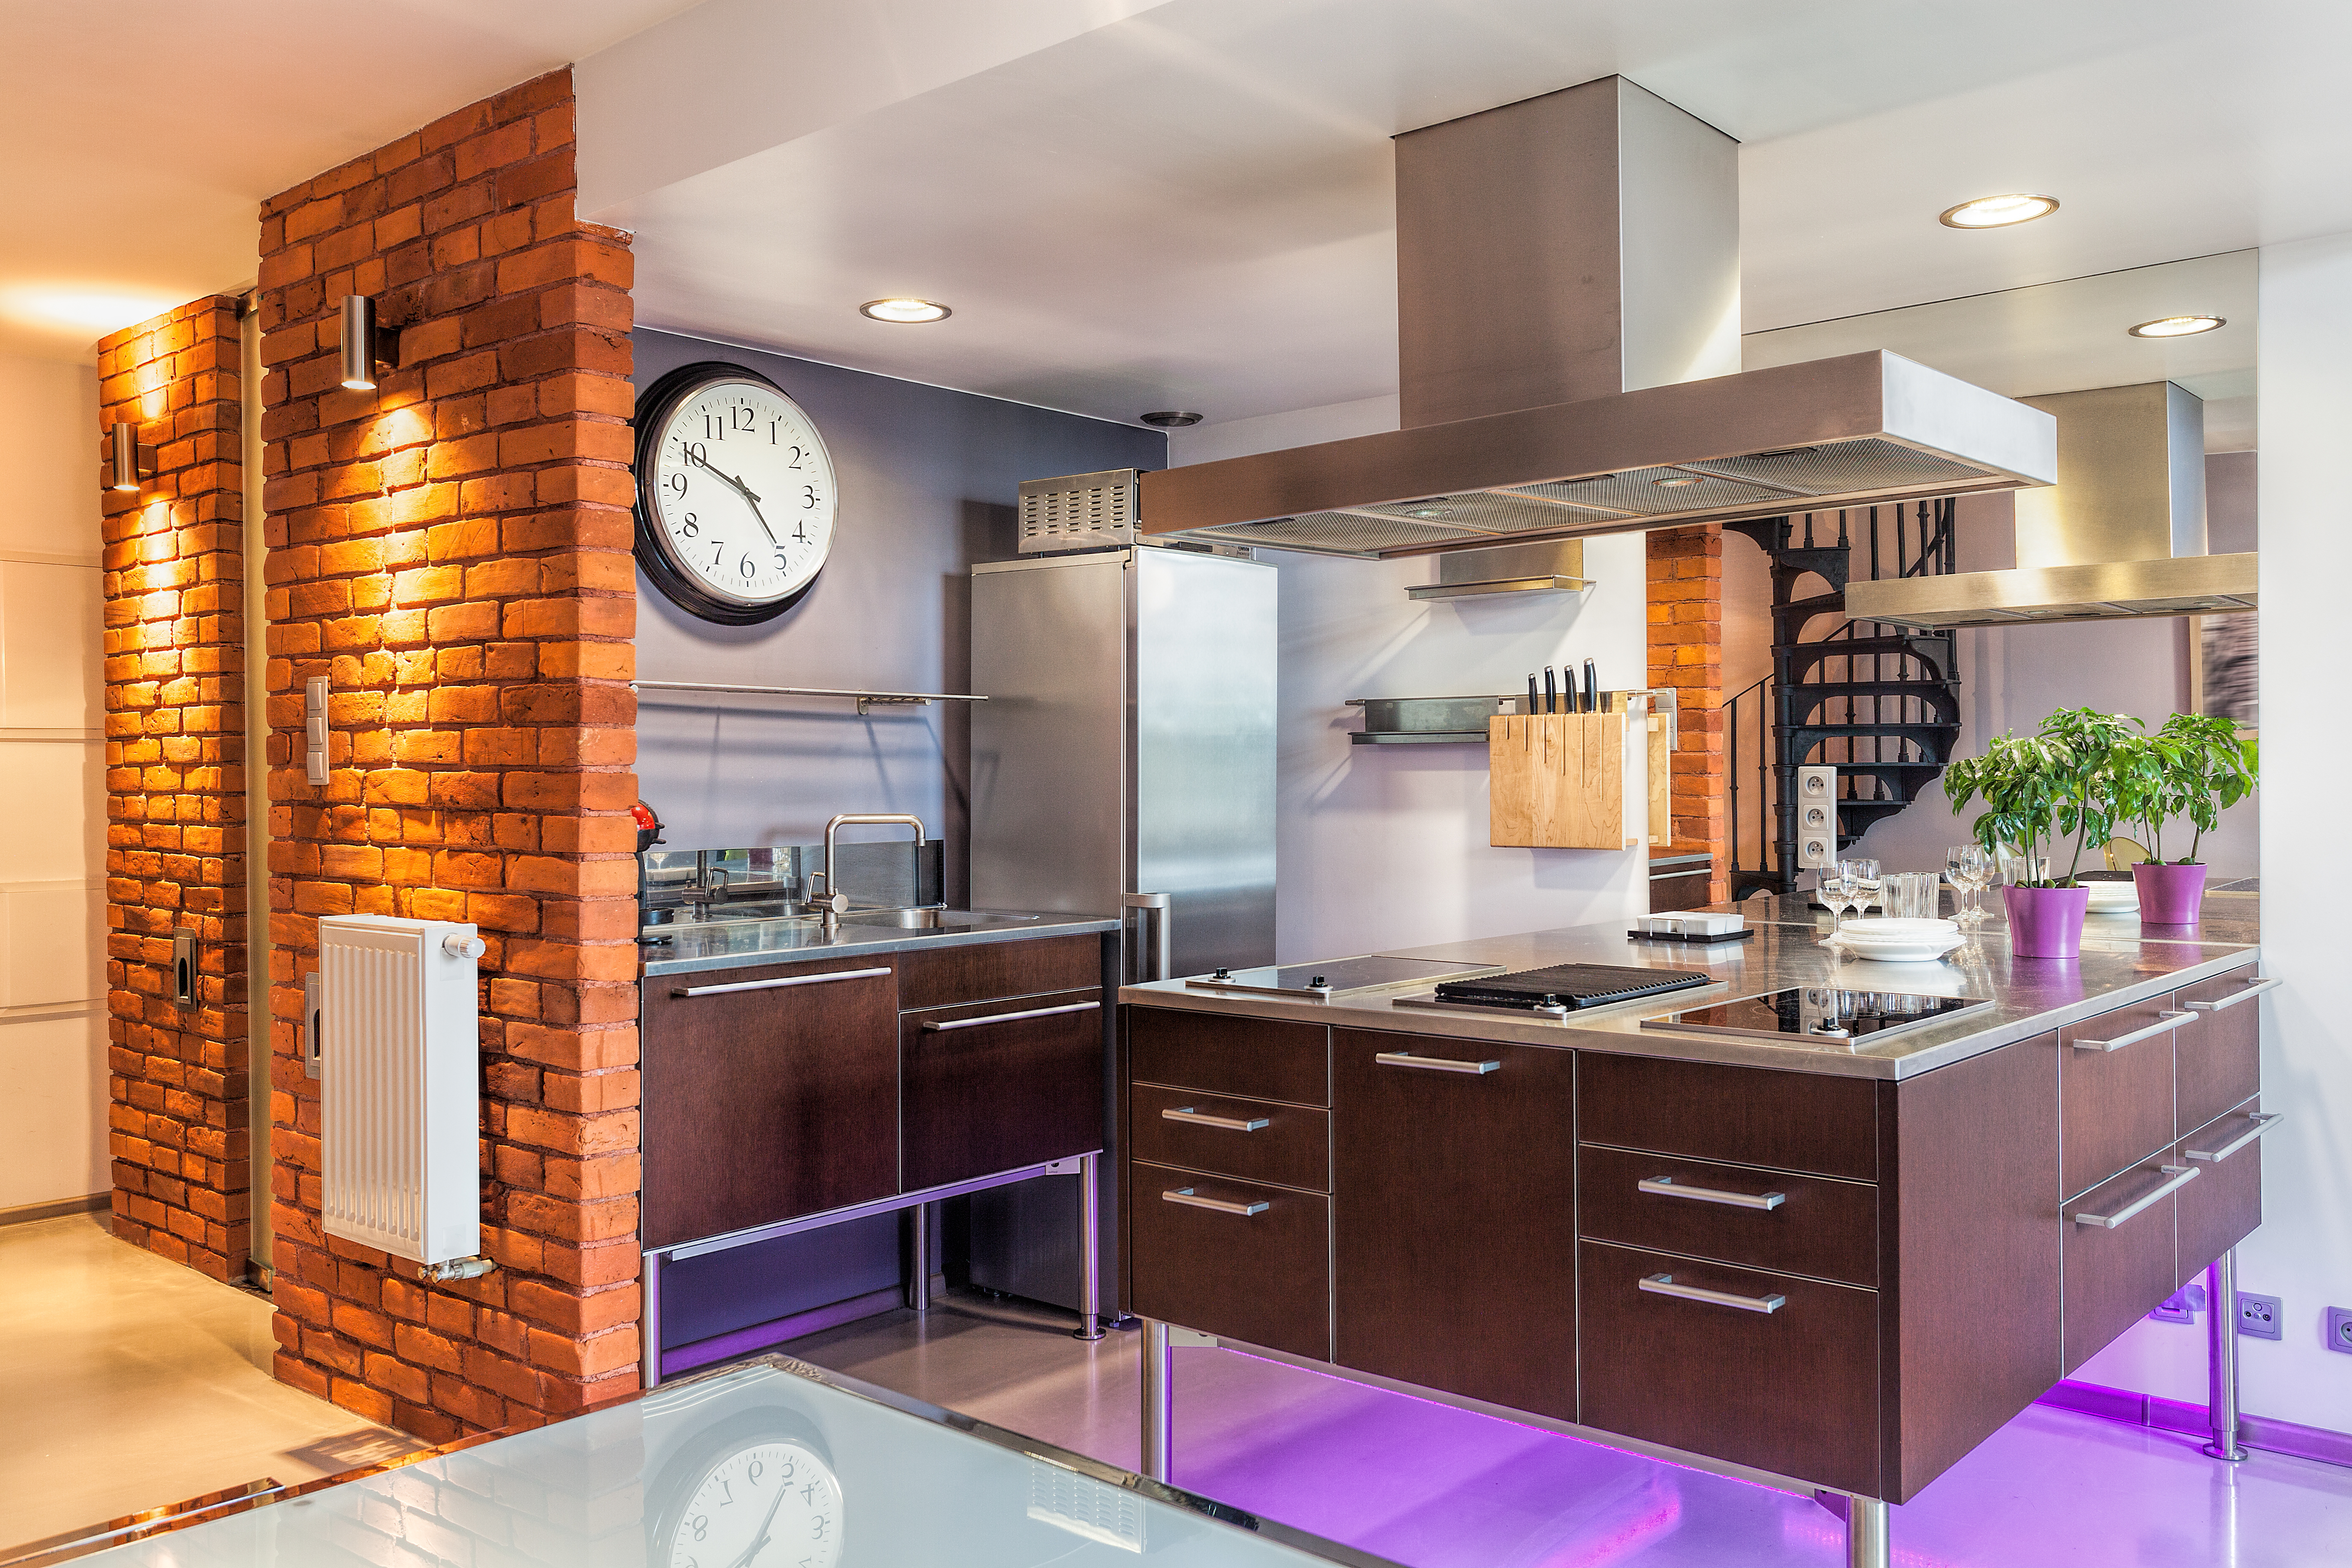 Modern kitchen featuring exposed brick and heavy use of stainless steel appliances and fixtures.